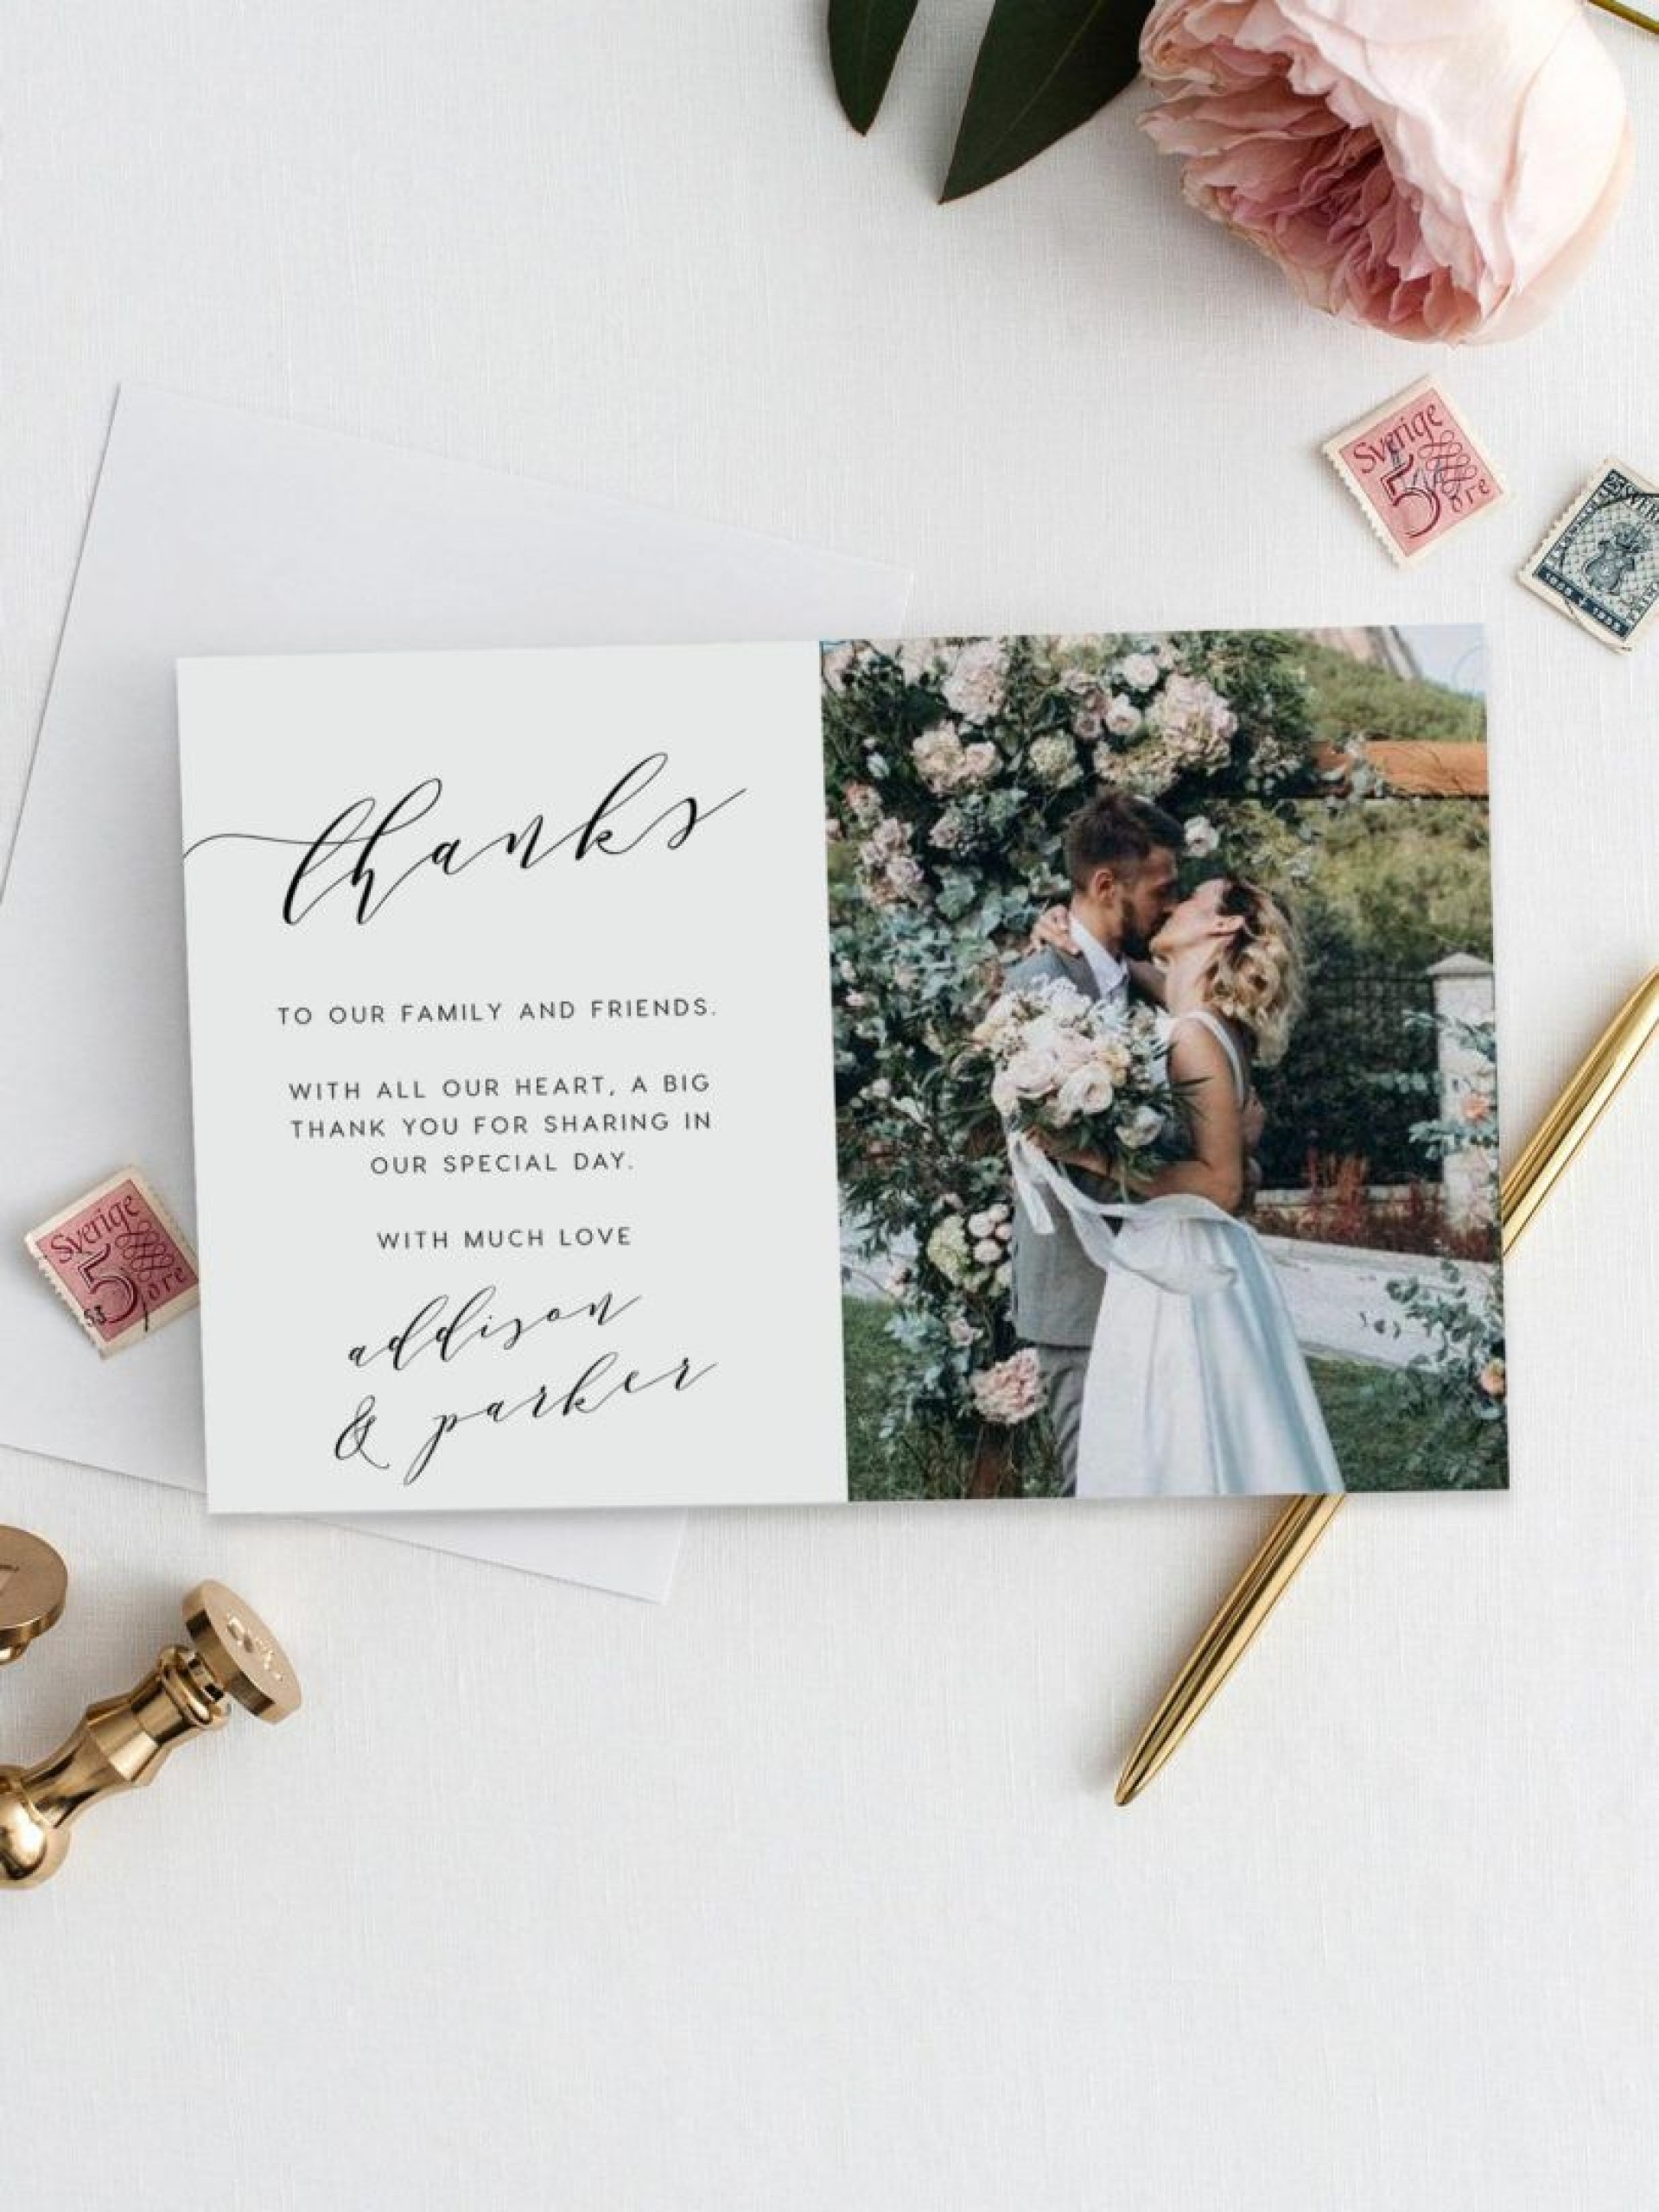 008 Awesome Thank You Note Template Wedding Money High Resolution  Card Example For Sample Cash Gift1920